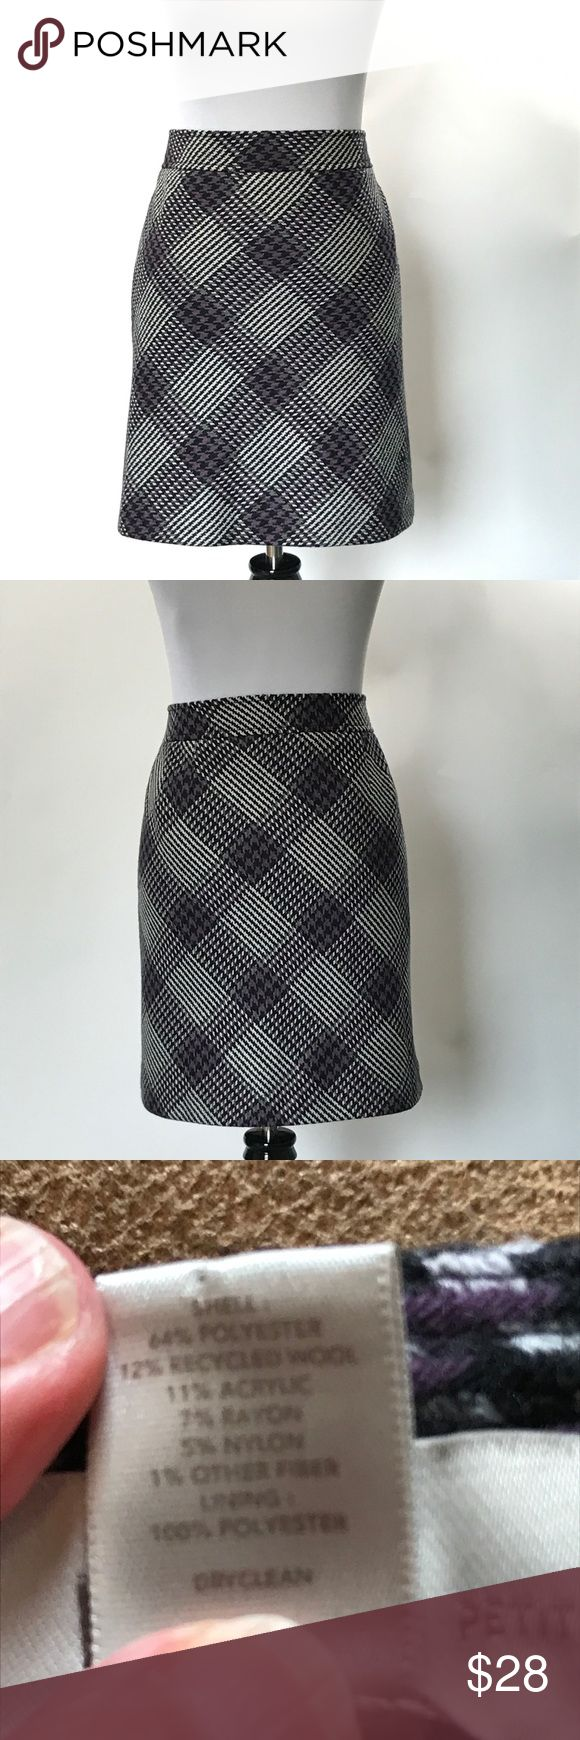 J.Crew  Wool Plaid skirt size 8 Wool plaid skirt by J.Crew factory outlet,  size 8. Skirt is a line with bias cut wool. It is lined. Please check pictures for garment information and measurements. Thanks for visiting my closet! J.Crew Skirts A-Line or Full